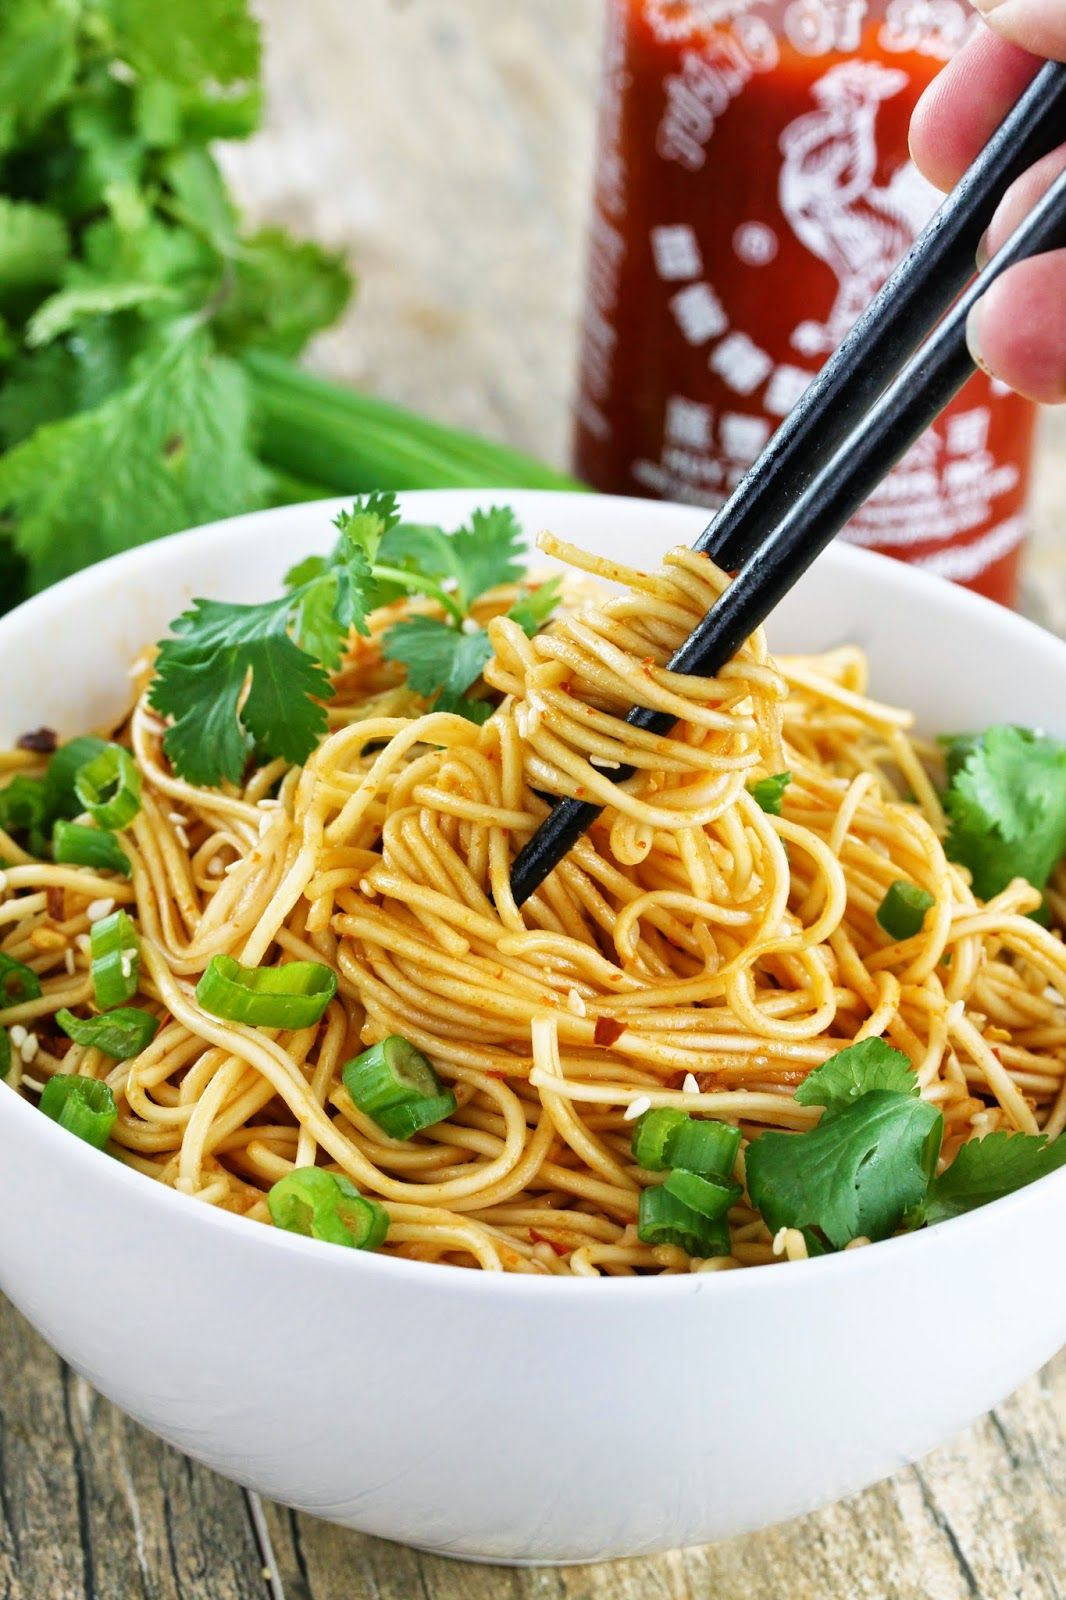 The Stay At Home Chef: 15 Minute Sriracha Ramen Noodles